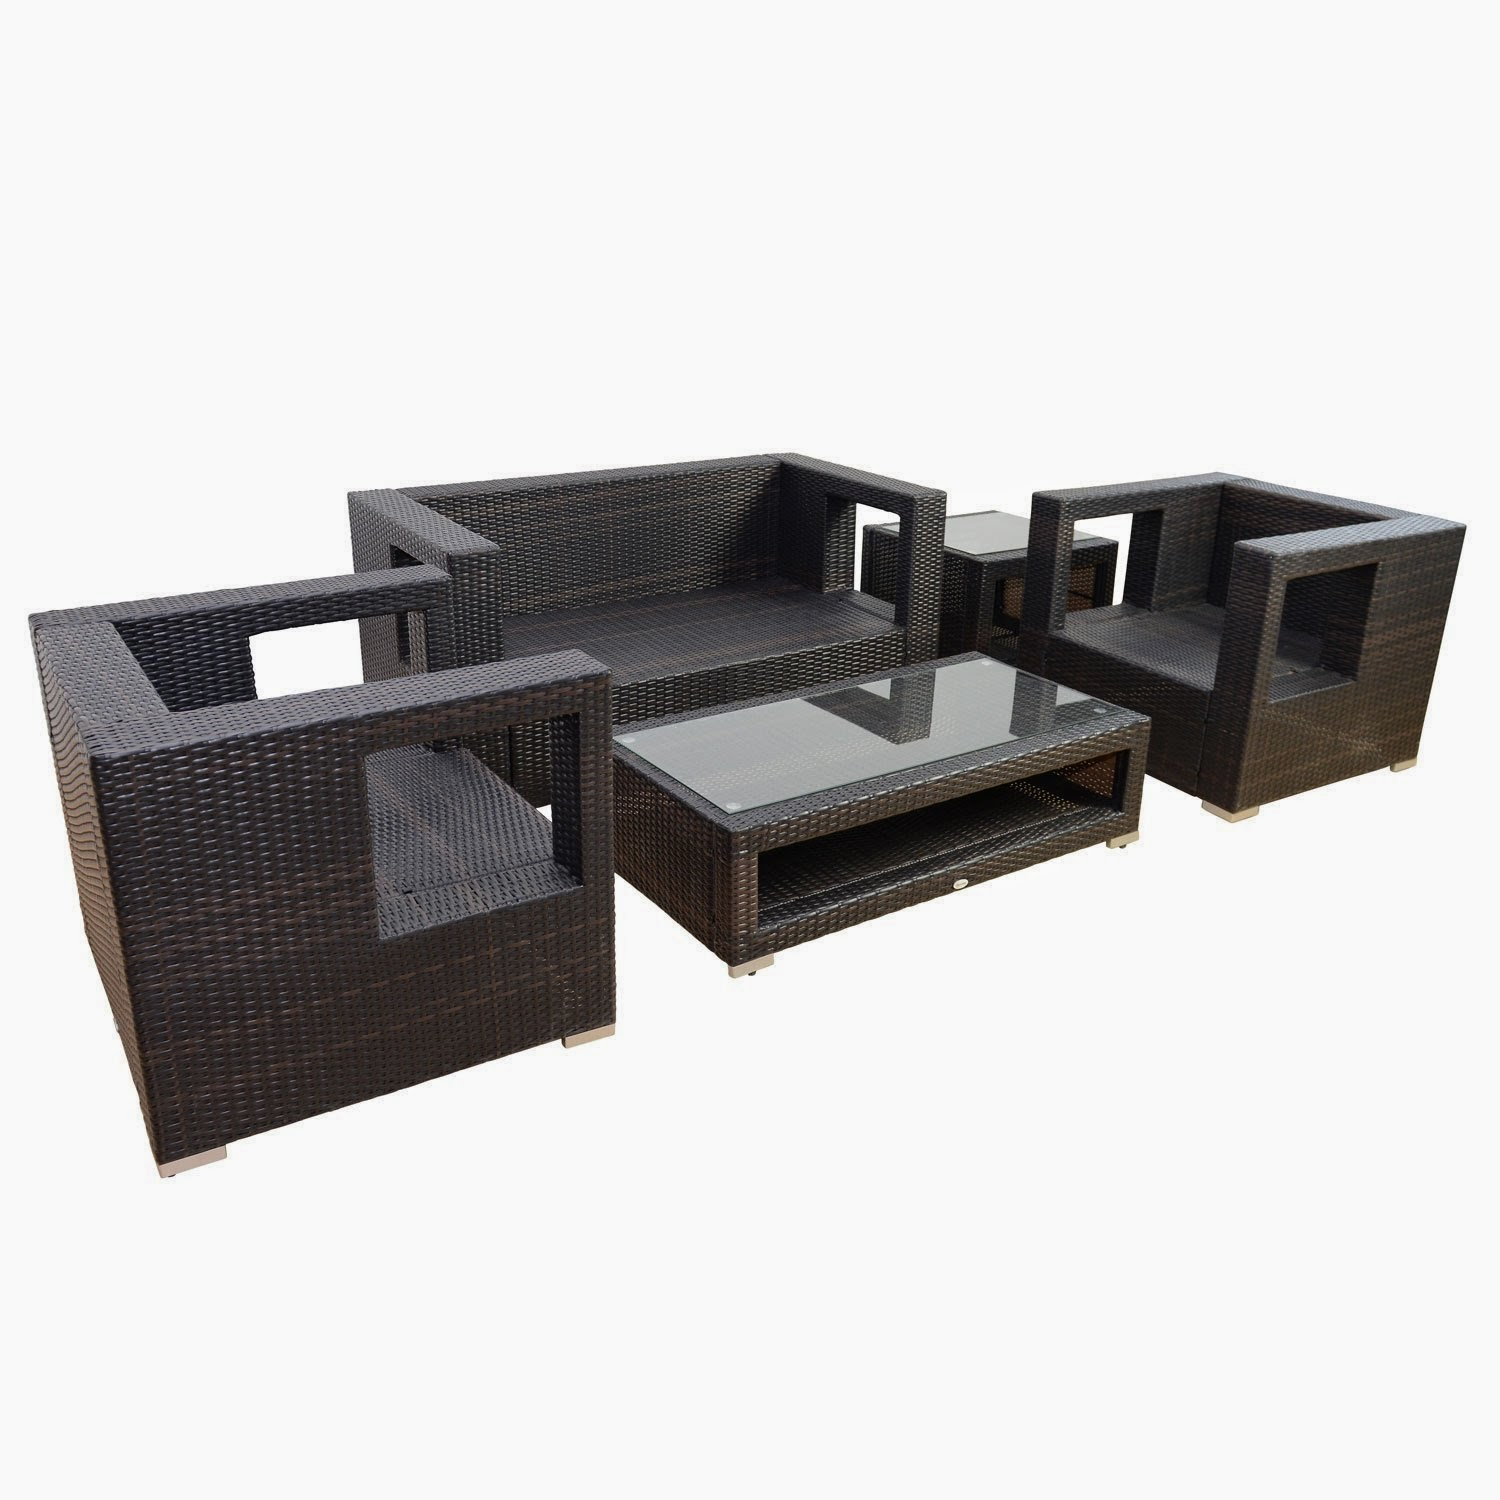 Get Discount Outsunny 5pc Outdoor Pe Rattan Wicker Sectional Loveseat Sofa Set Outdoor Patio